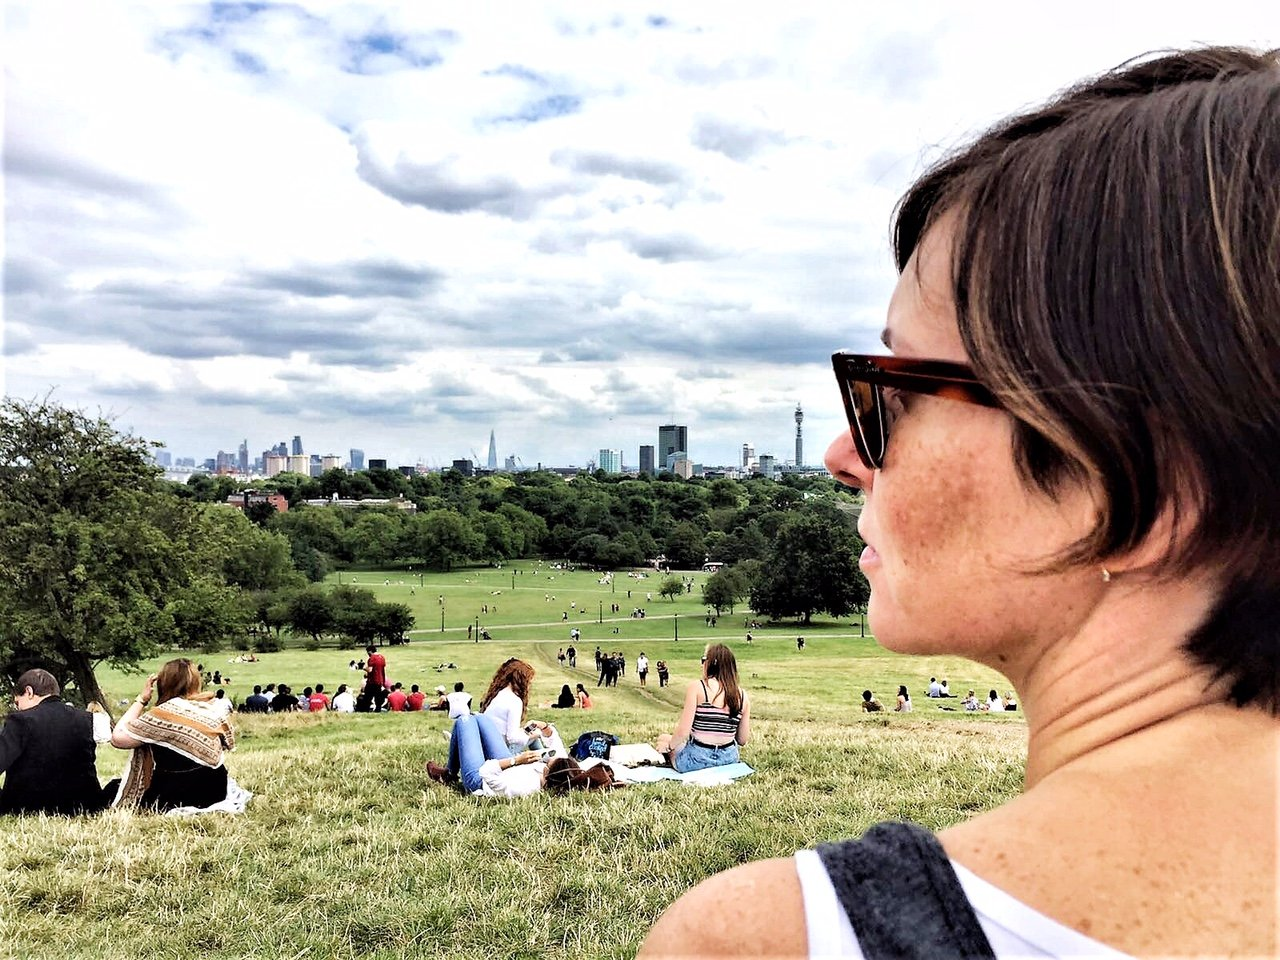 Our expat life in London